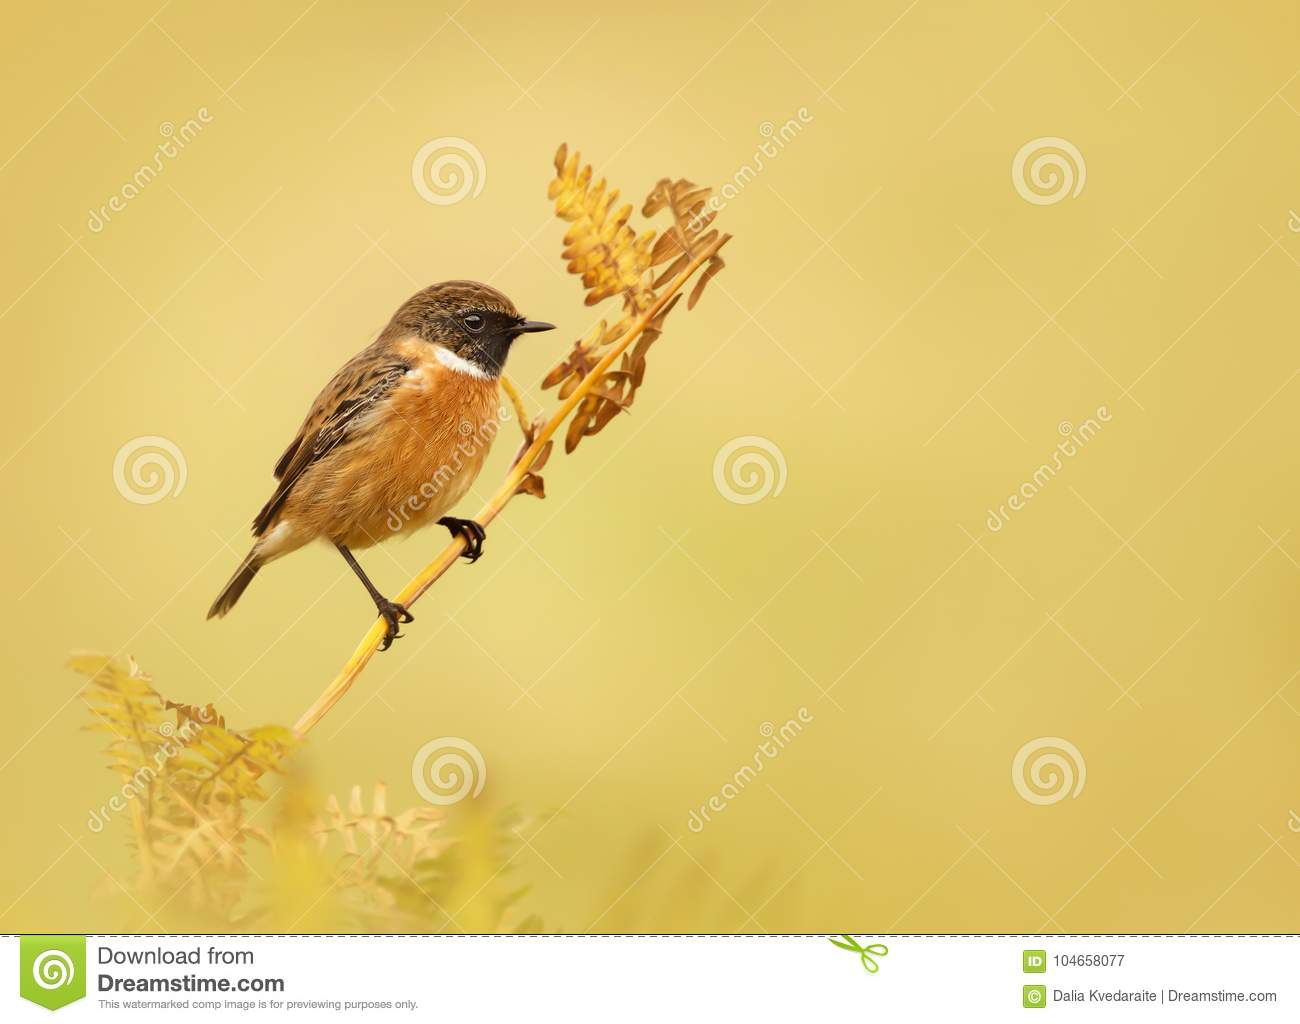 European stonechat perching on a fern branch